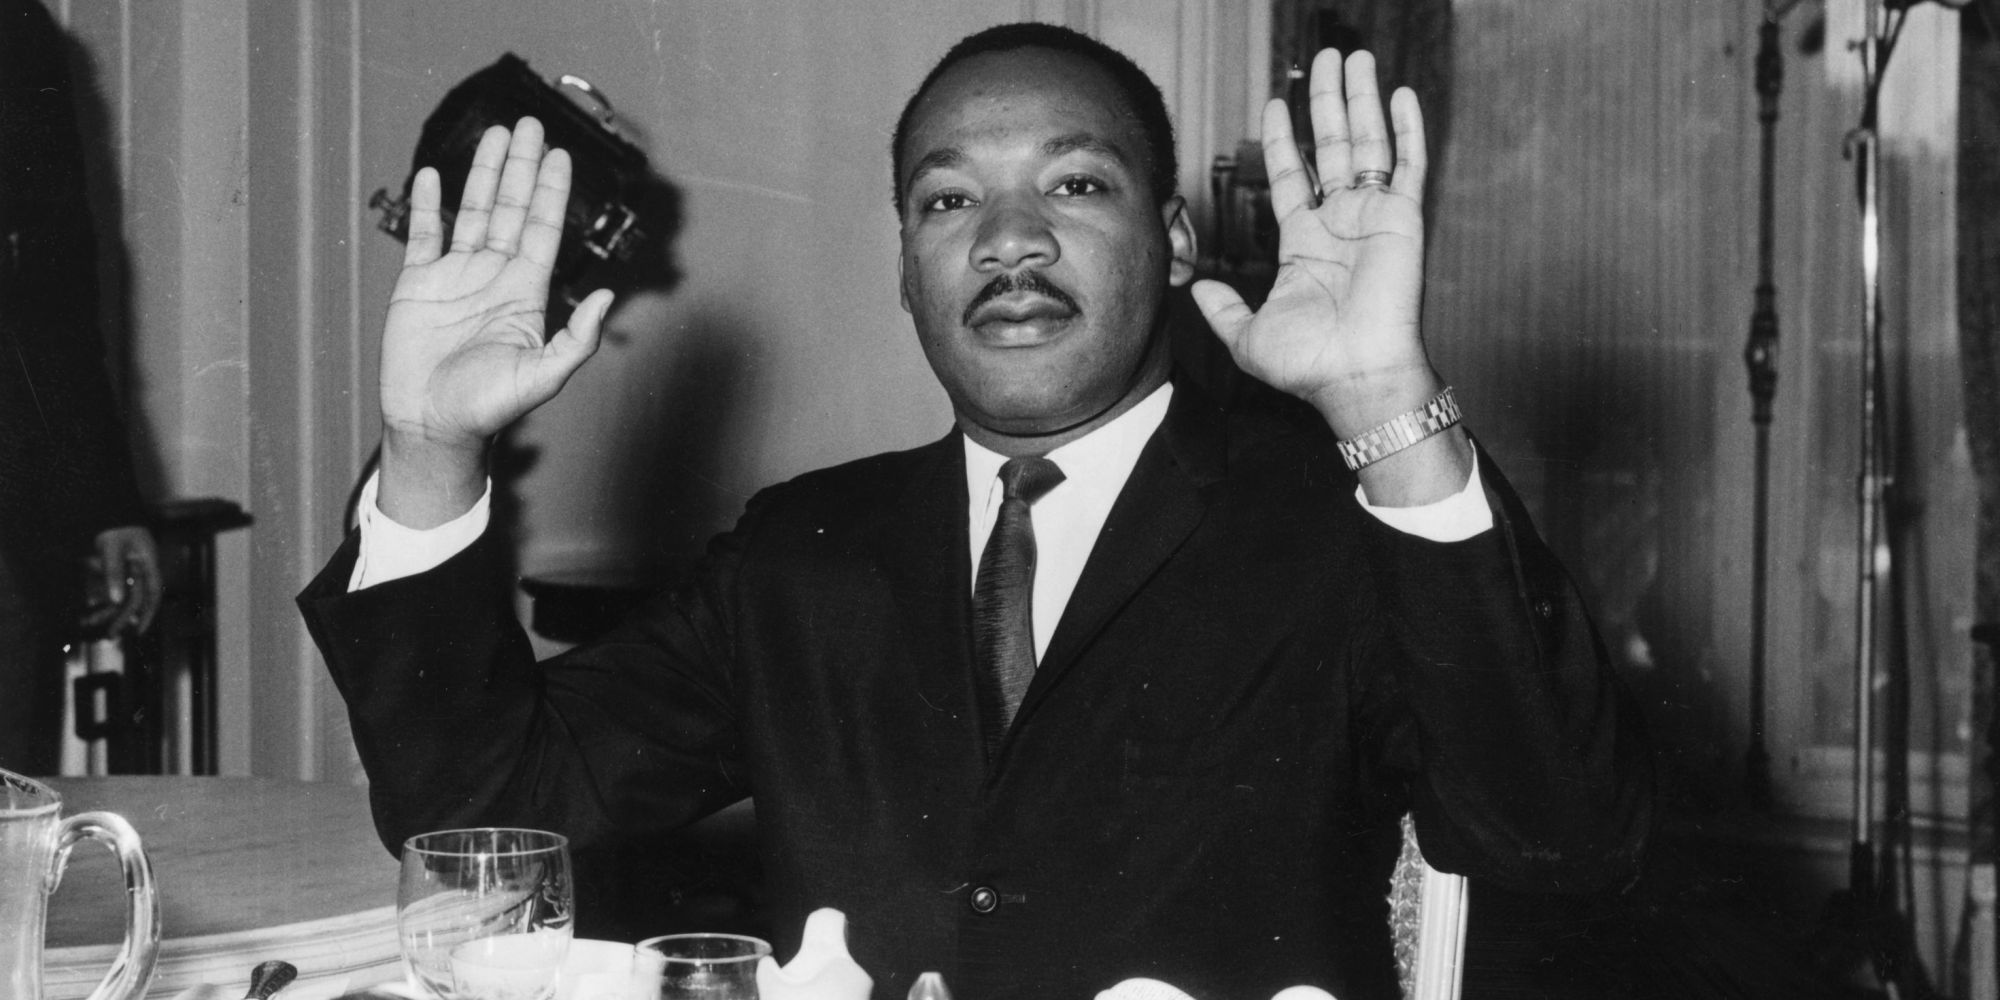 21st September 1963:  Black American civil rights leader and Baptist minister Dr Martin Luther King (1929  - 1968) raising his hands in a restaurant.  (Photo by William H. Alden/Evening Standard/Getty Images)